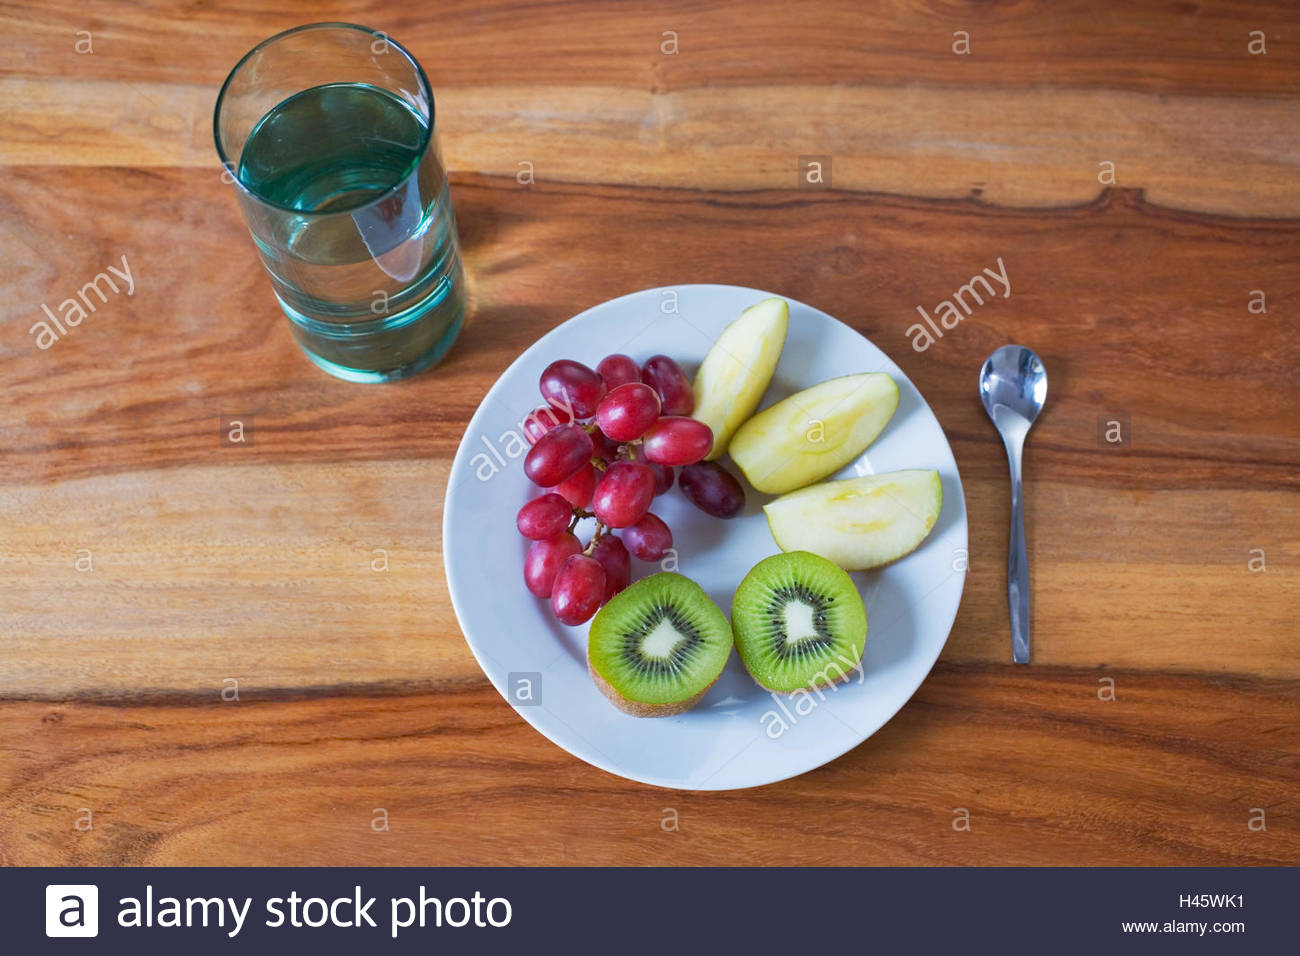 Plate With Food Top View Plates Fruit Glass Water Spoon Top View Stilllife